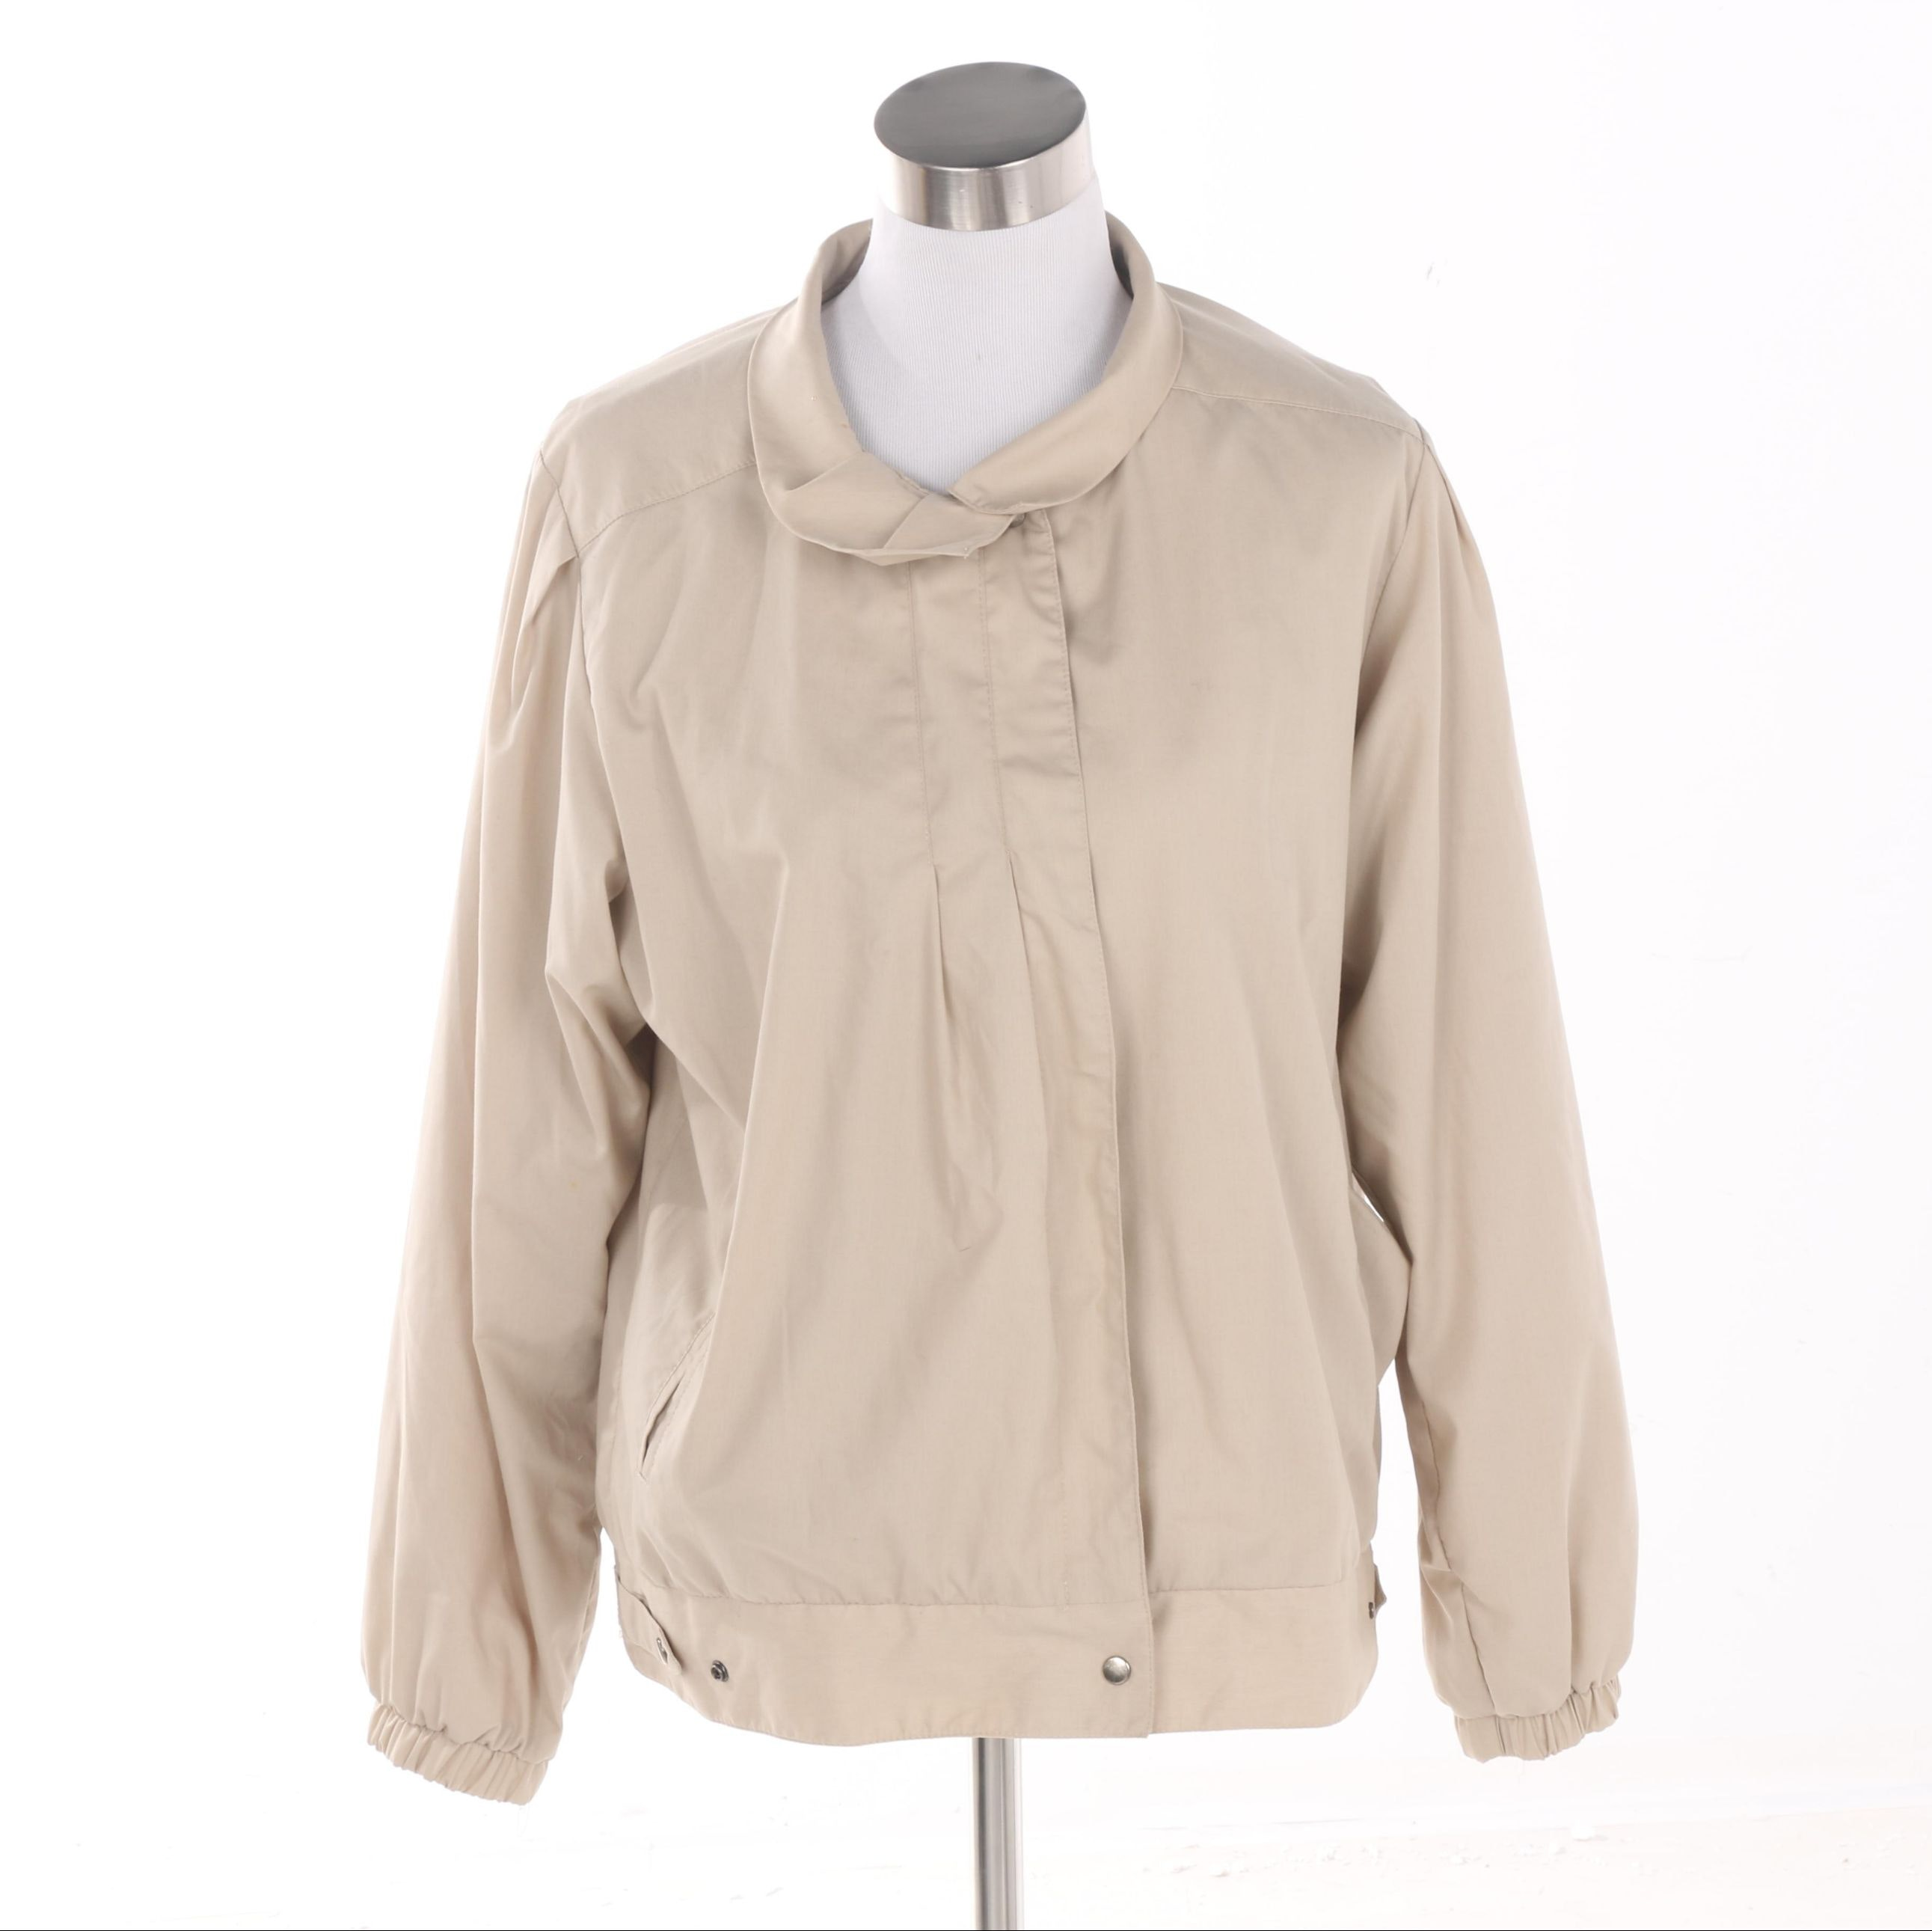 Women's London Fog Khaki Cotton Jacket